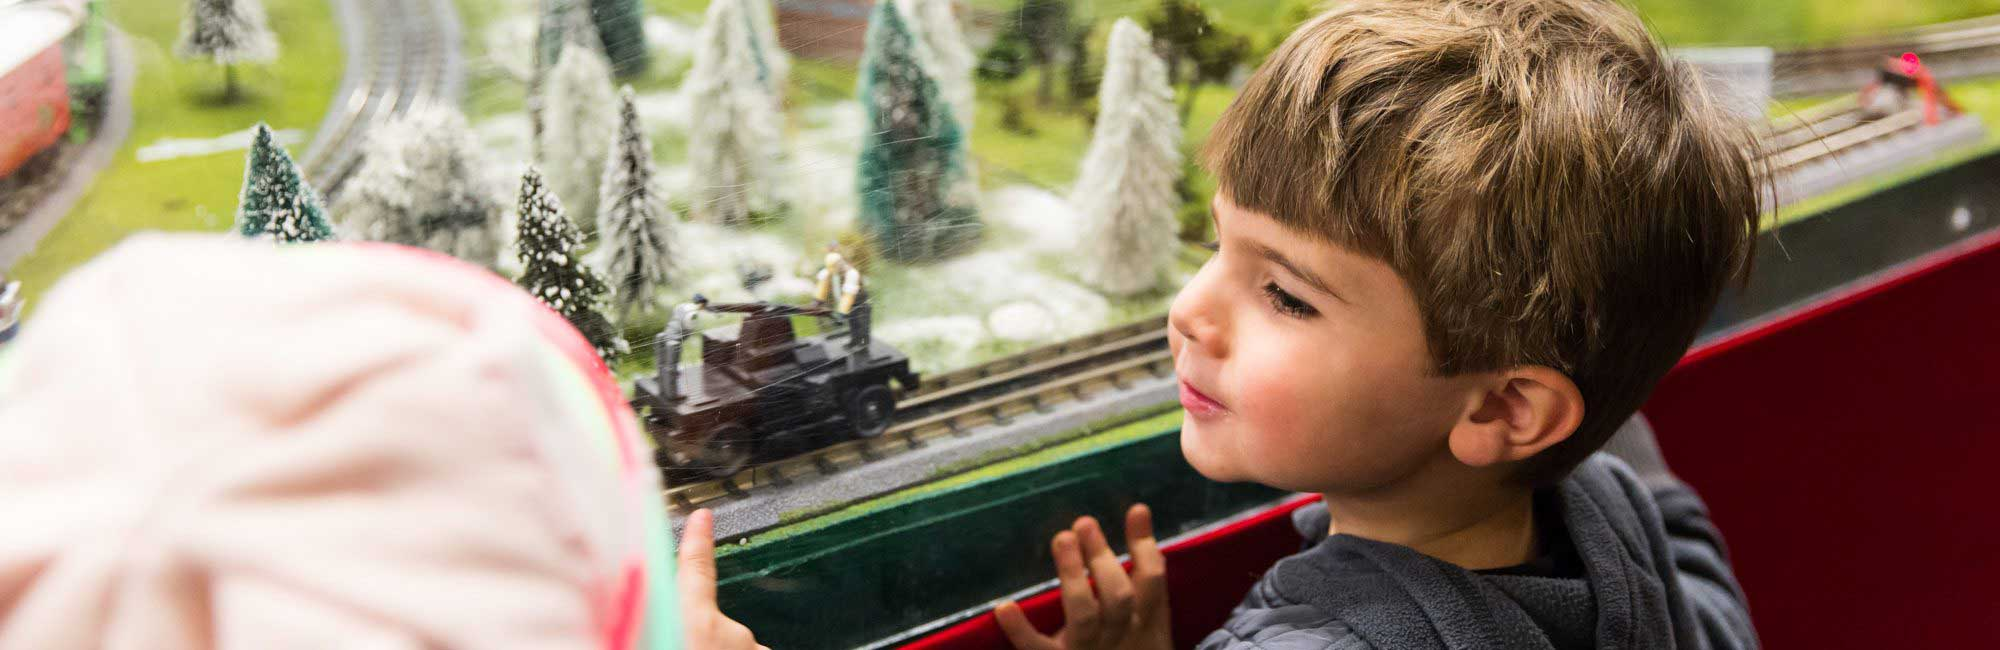 child looks in wonder at toy trains